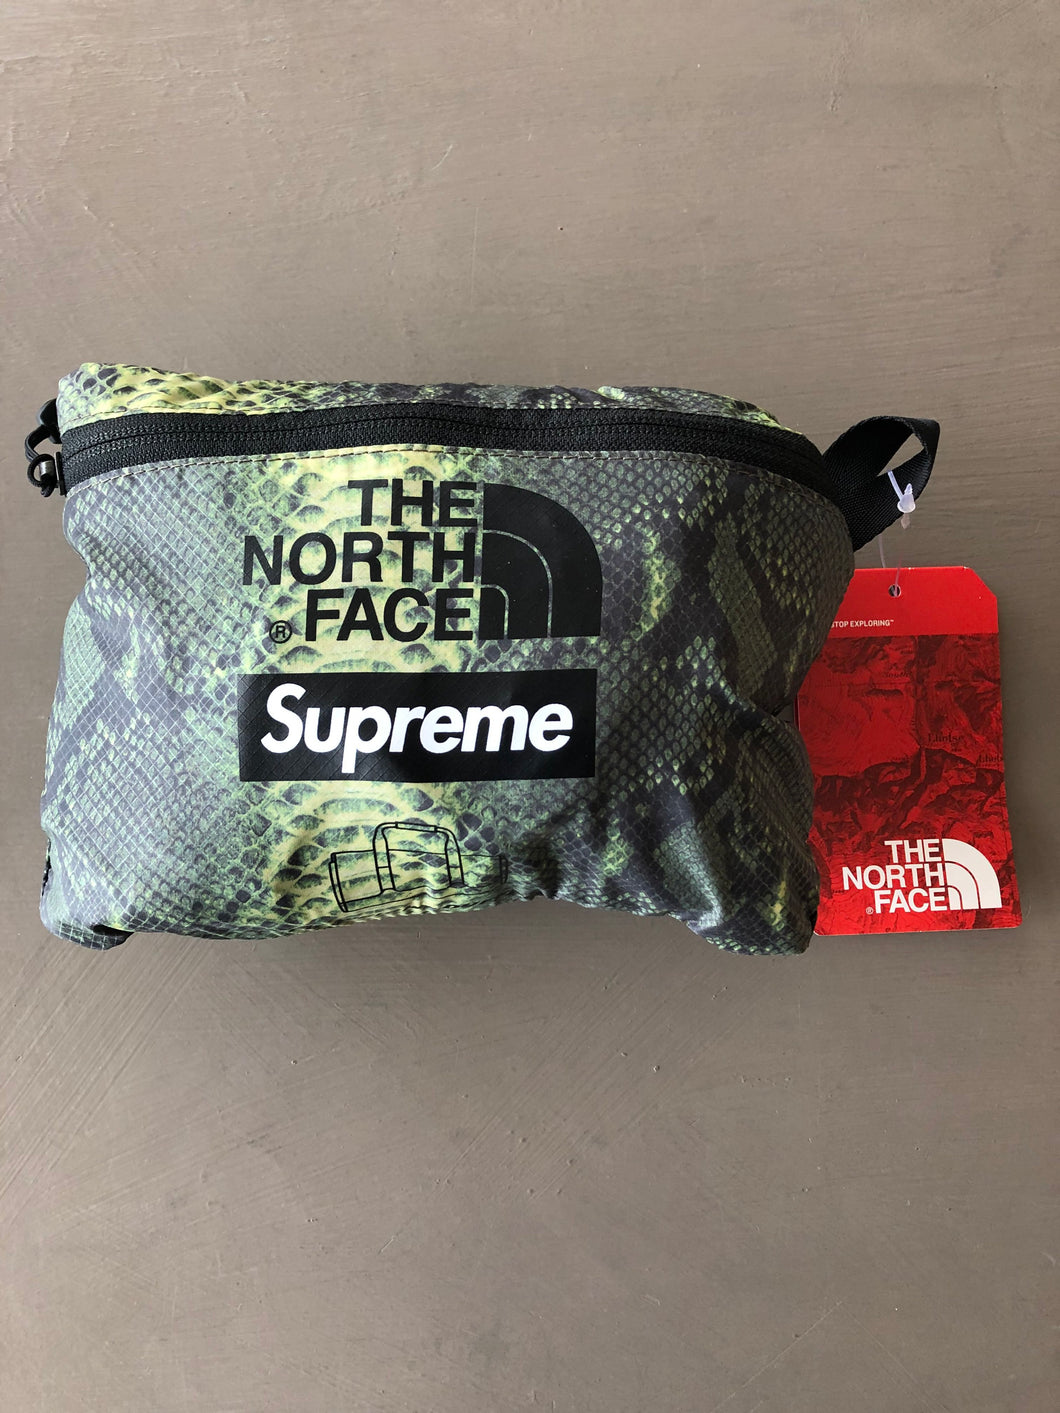 Supreme x The North Face Snakeskin Duffle Bag